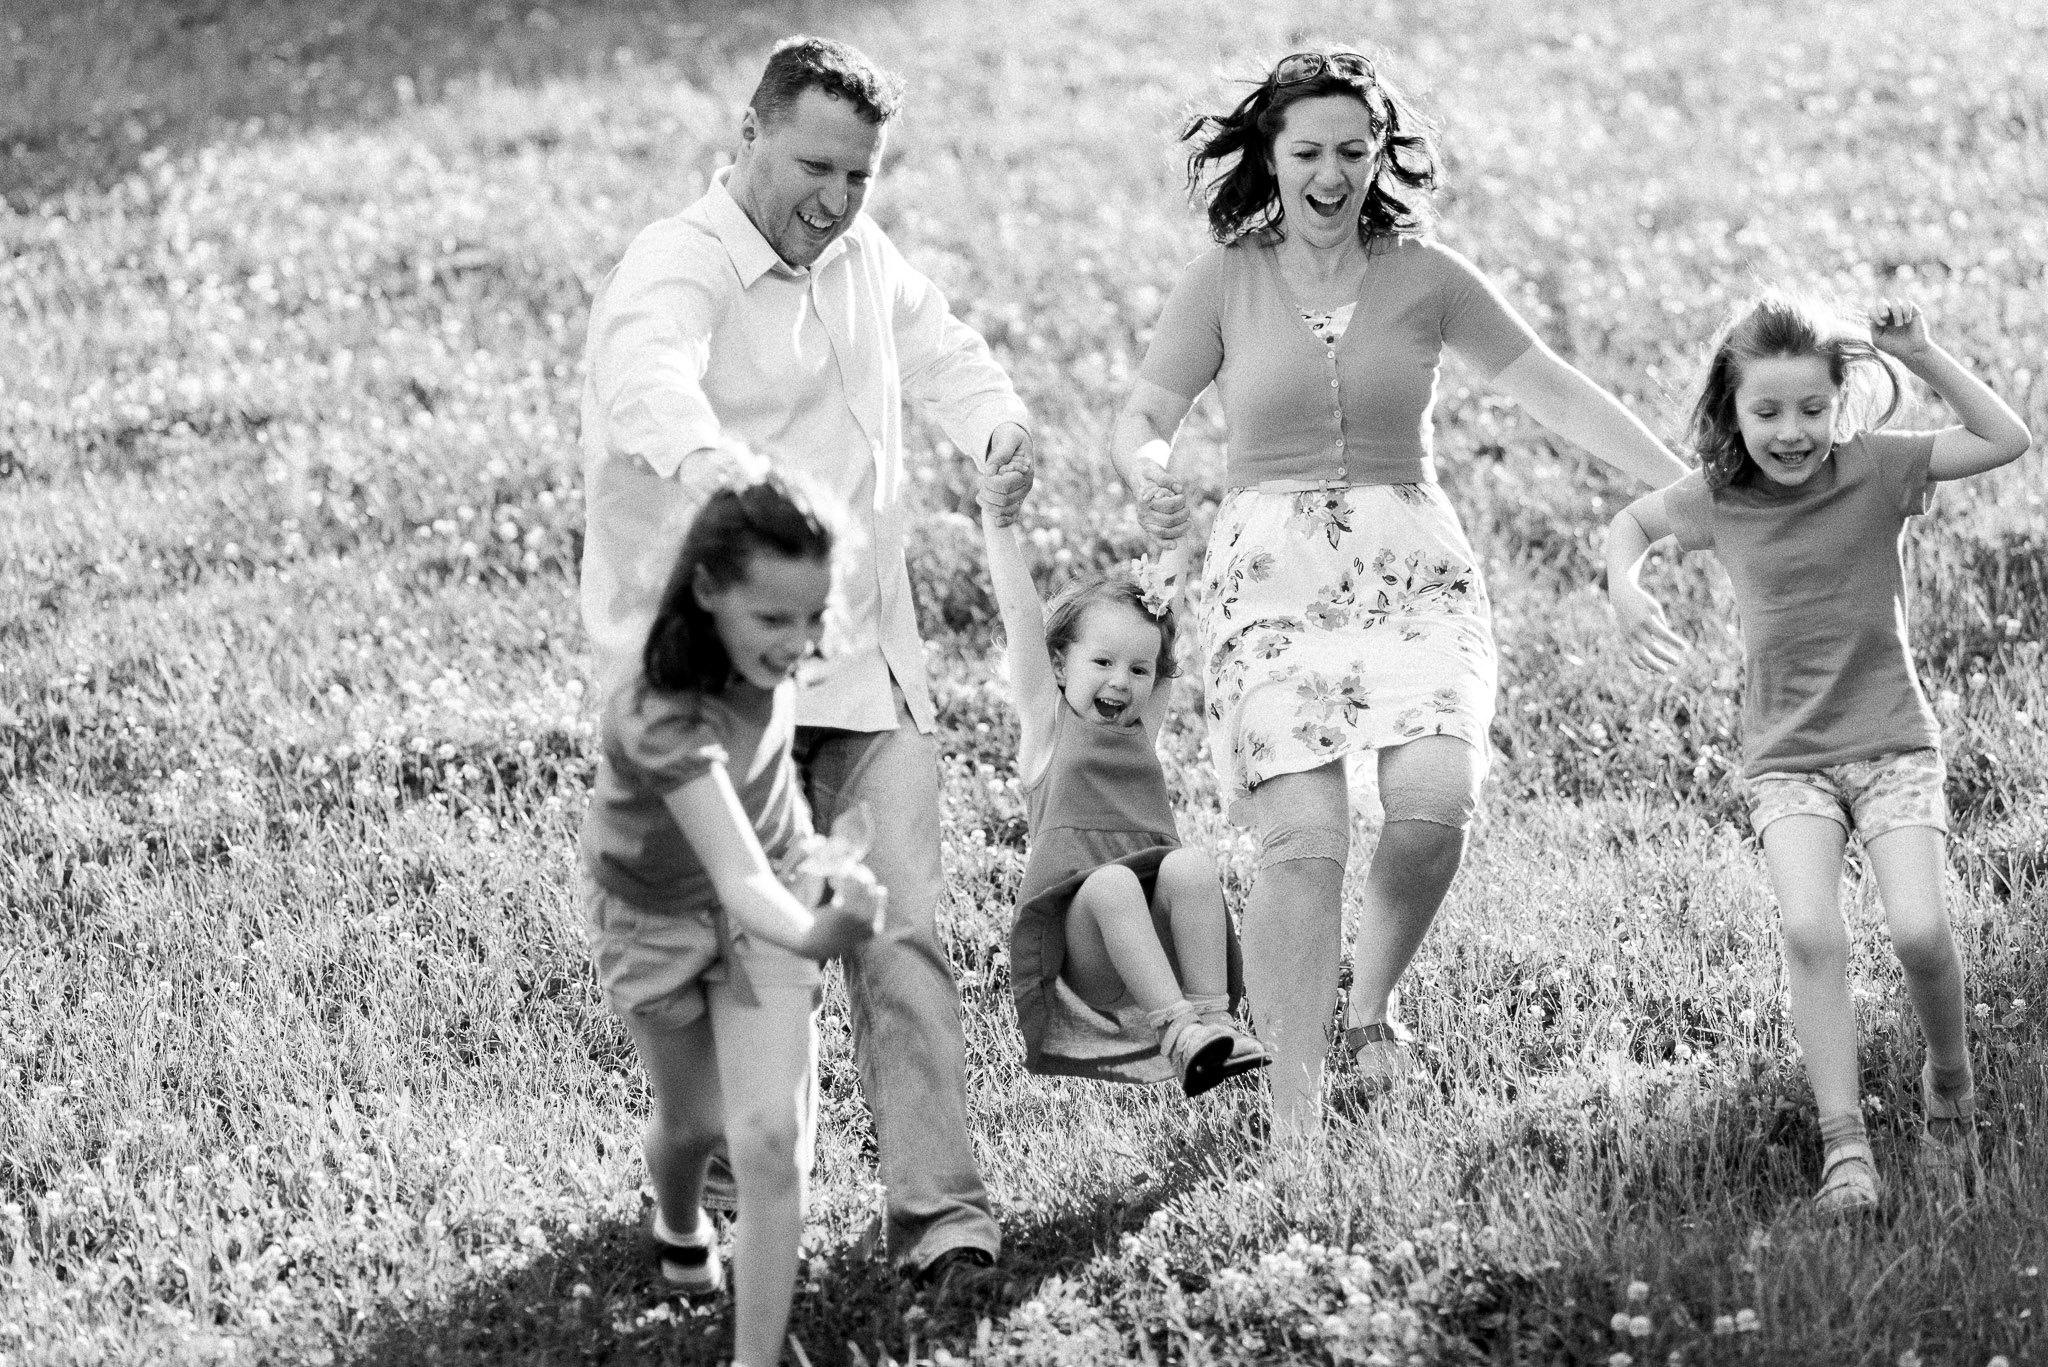 family photography engagement wedding photography sweden hungary international photographer